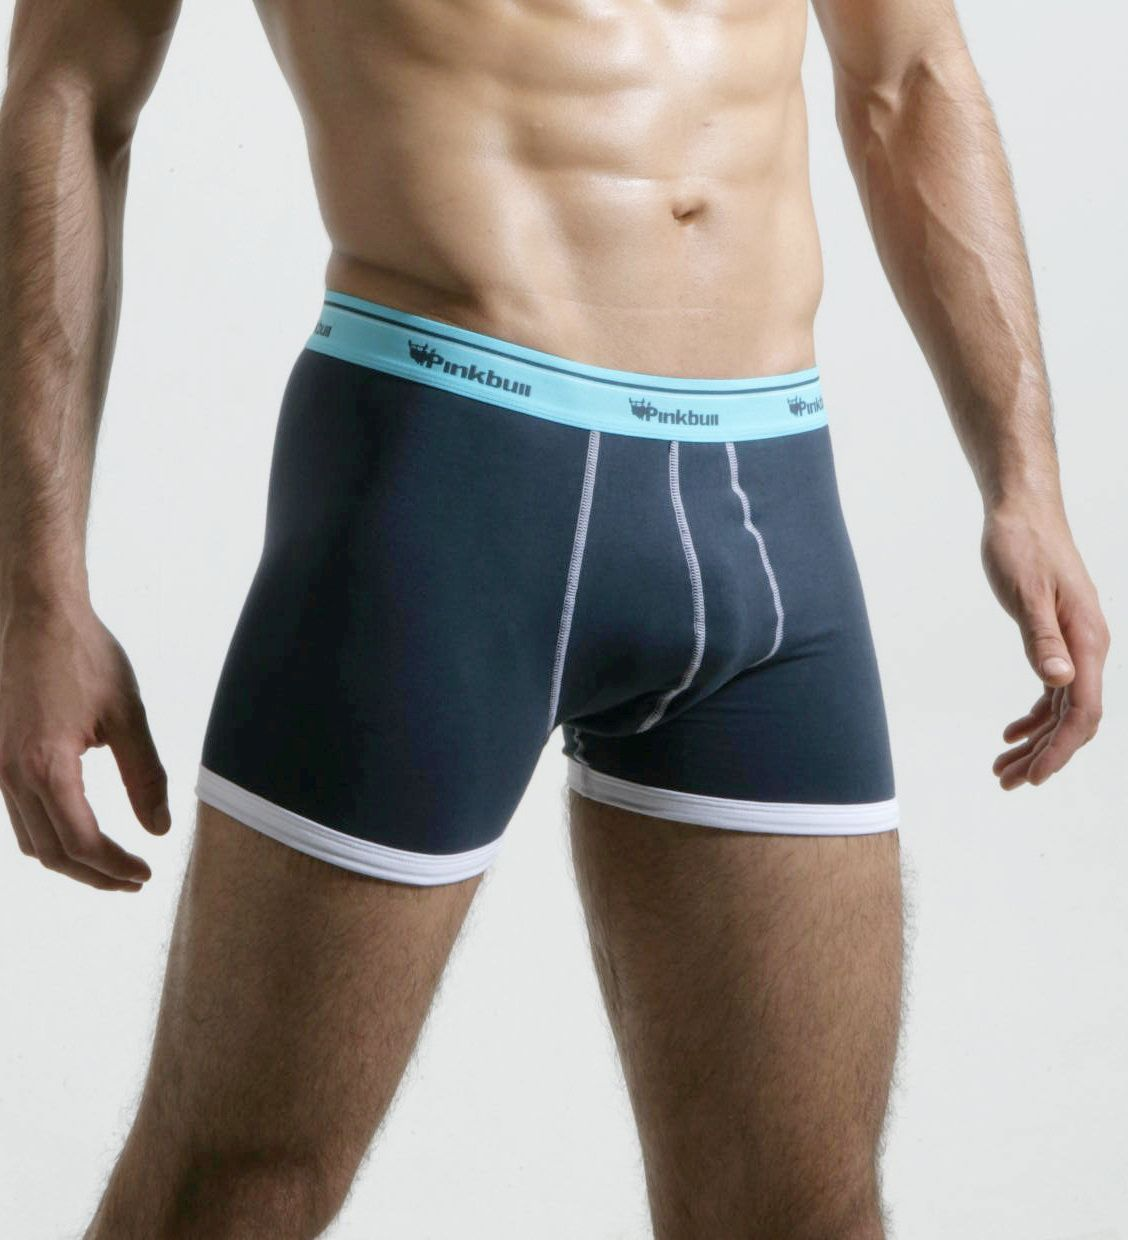 17 Best images about mens underwear basic on Pinterest | Duke, Red ...